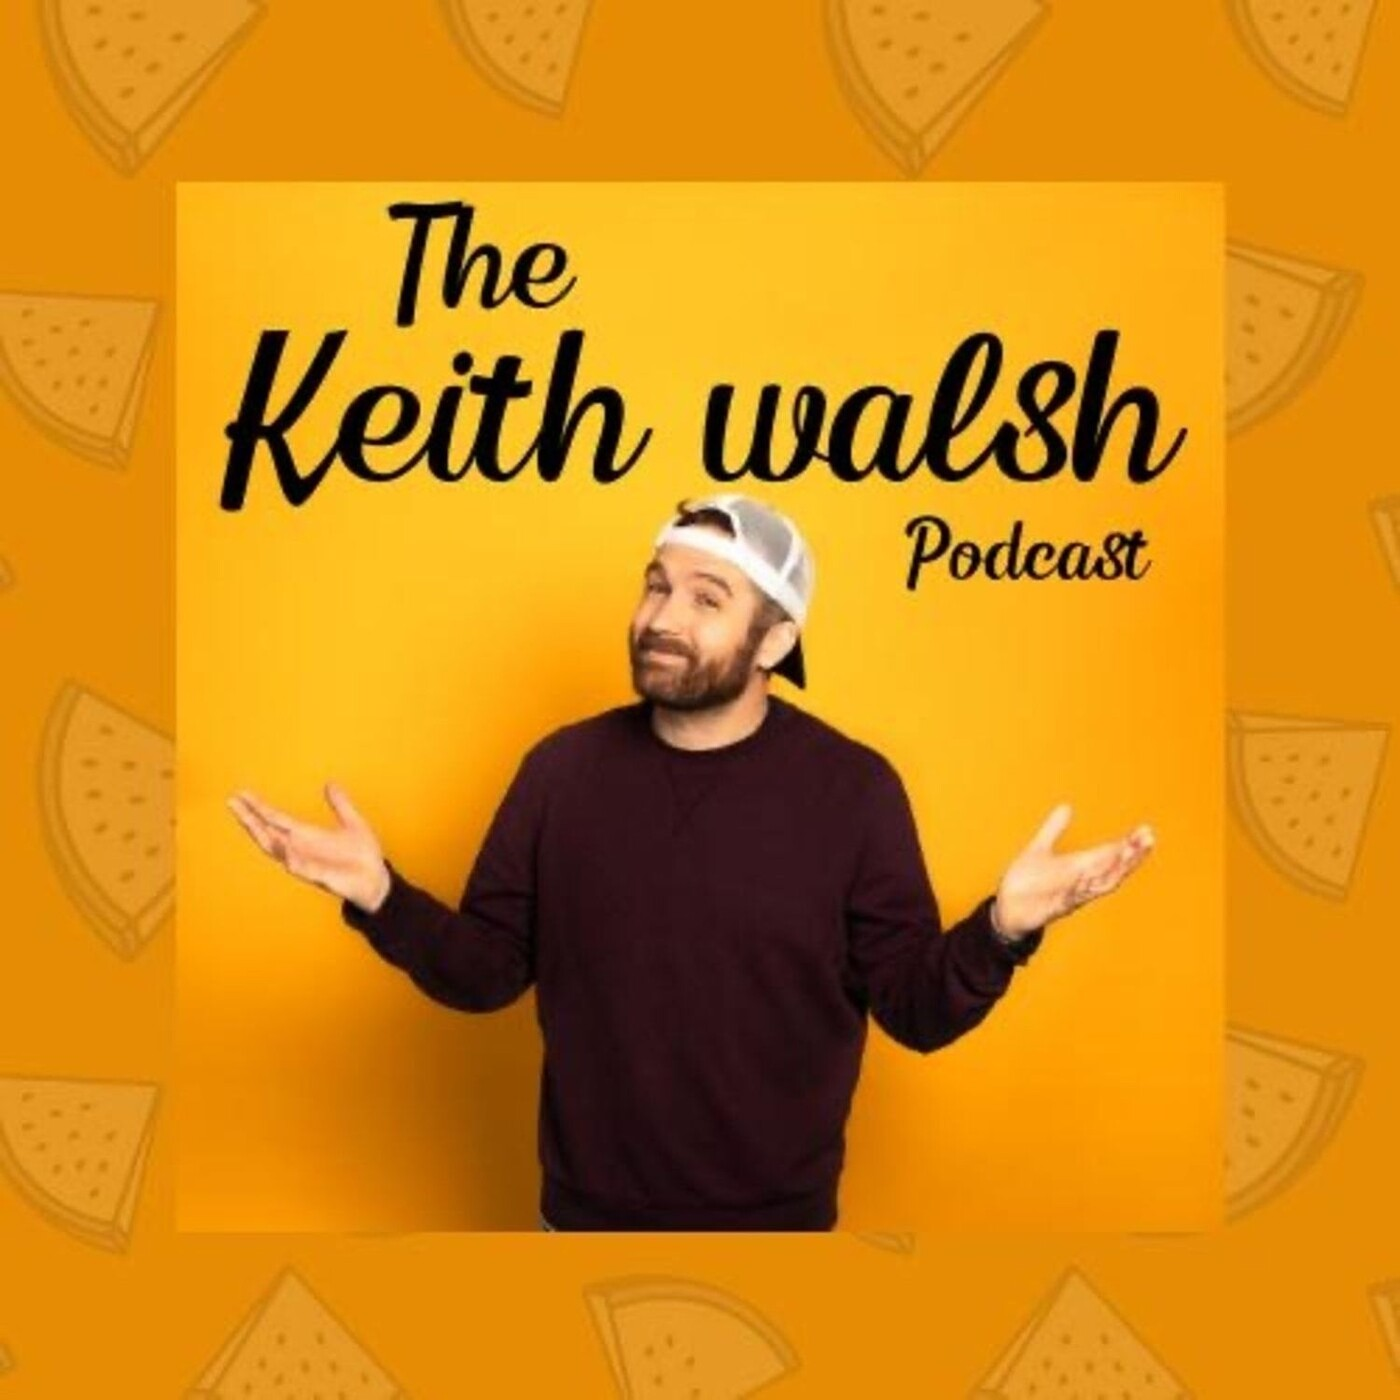 The Keith Walsh Podcast Episode 14 with Stephen James Smith